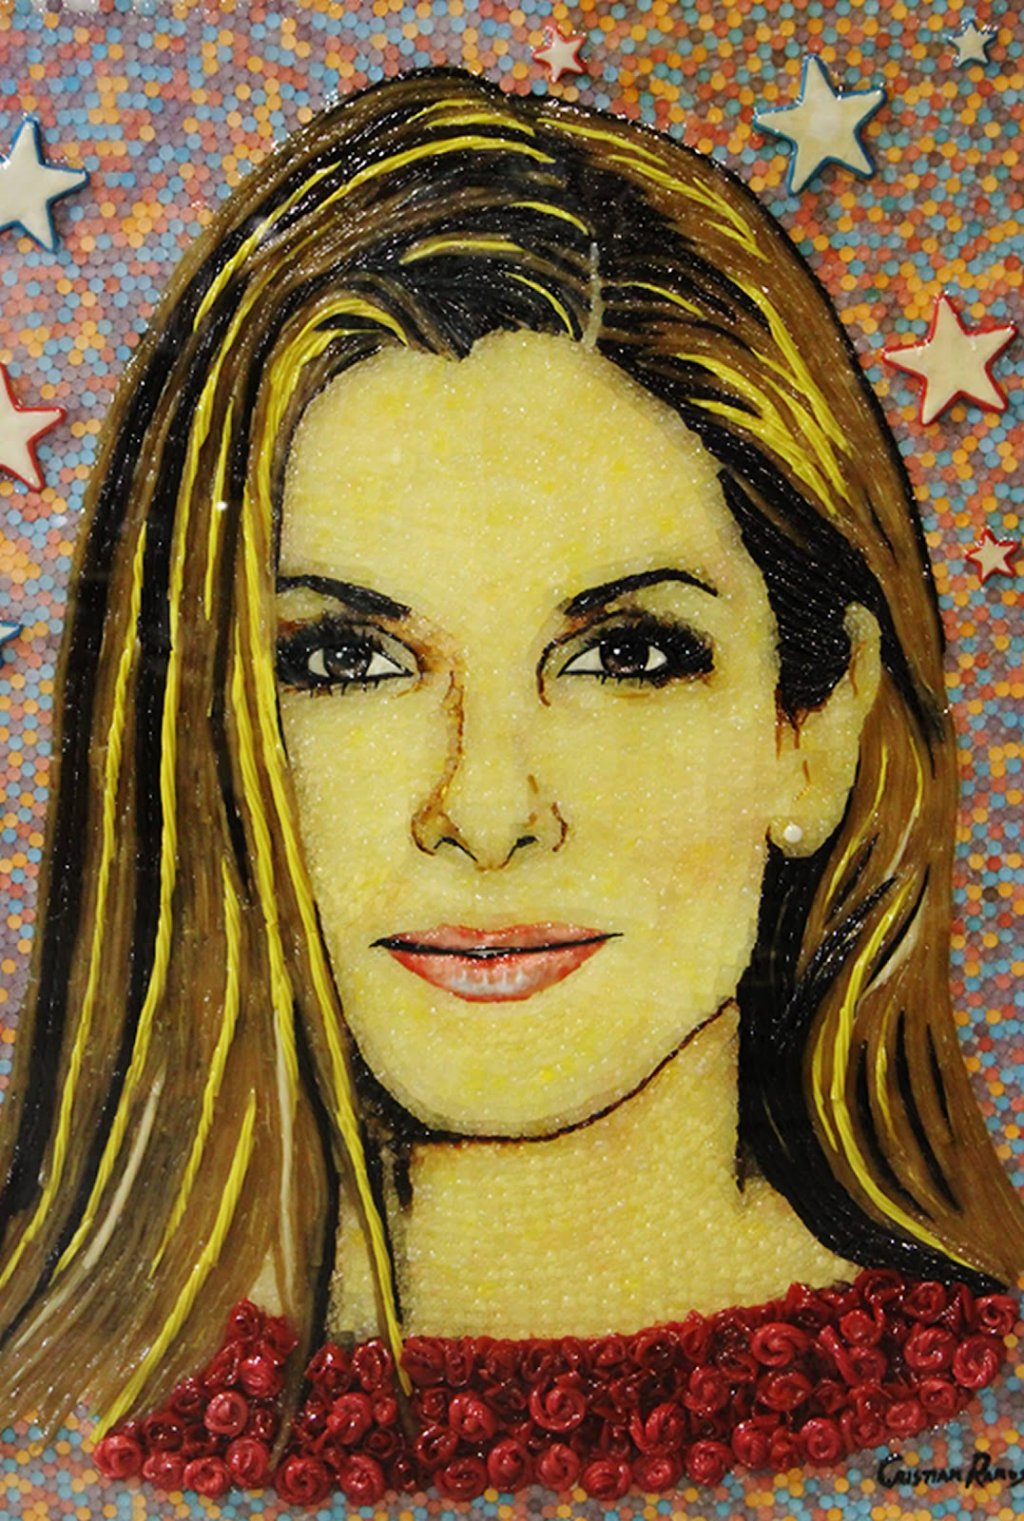 Celebrity Portraits made out of Sweet Candy